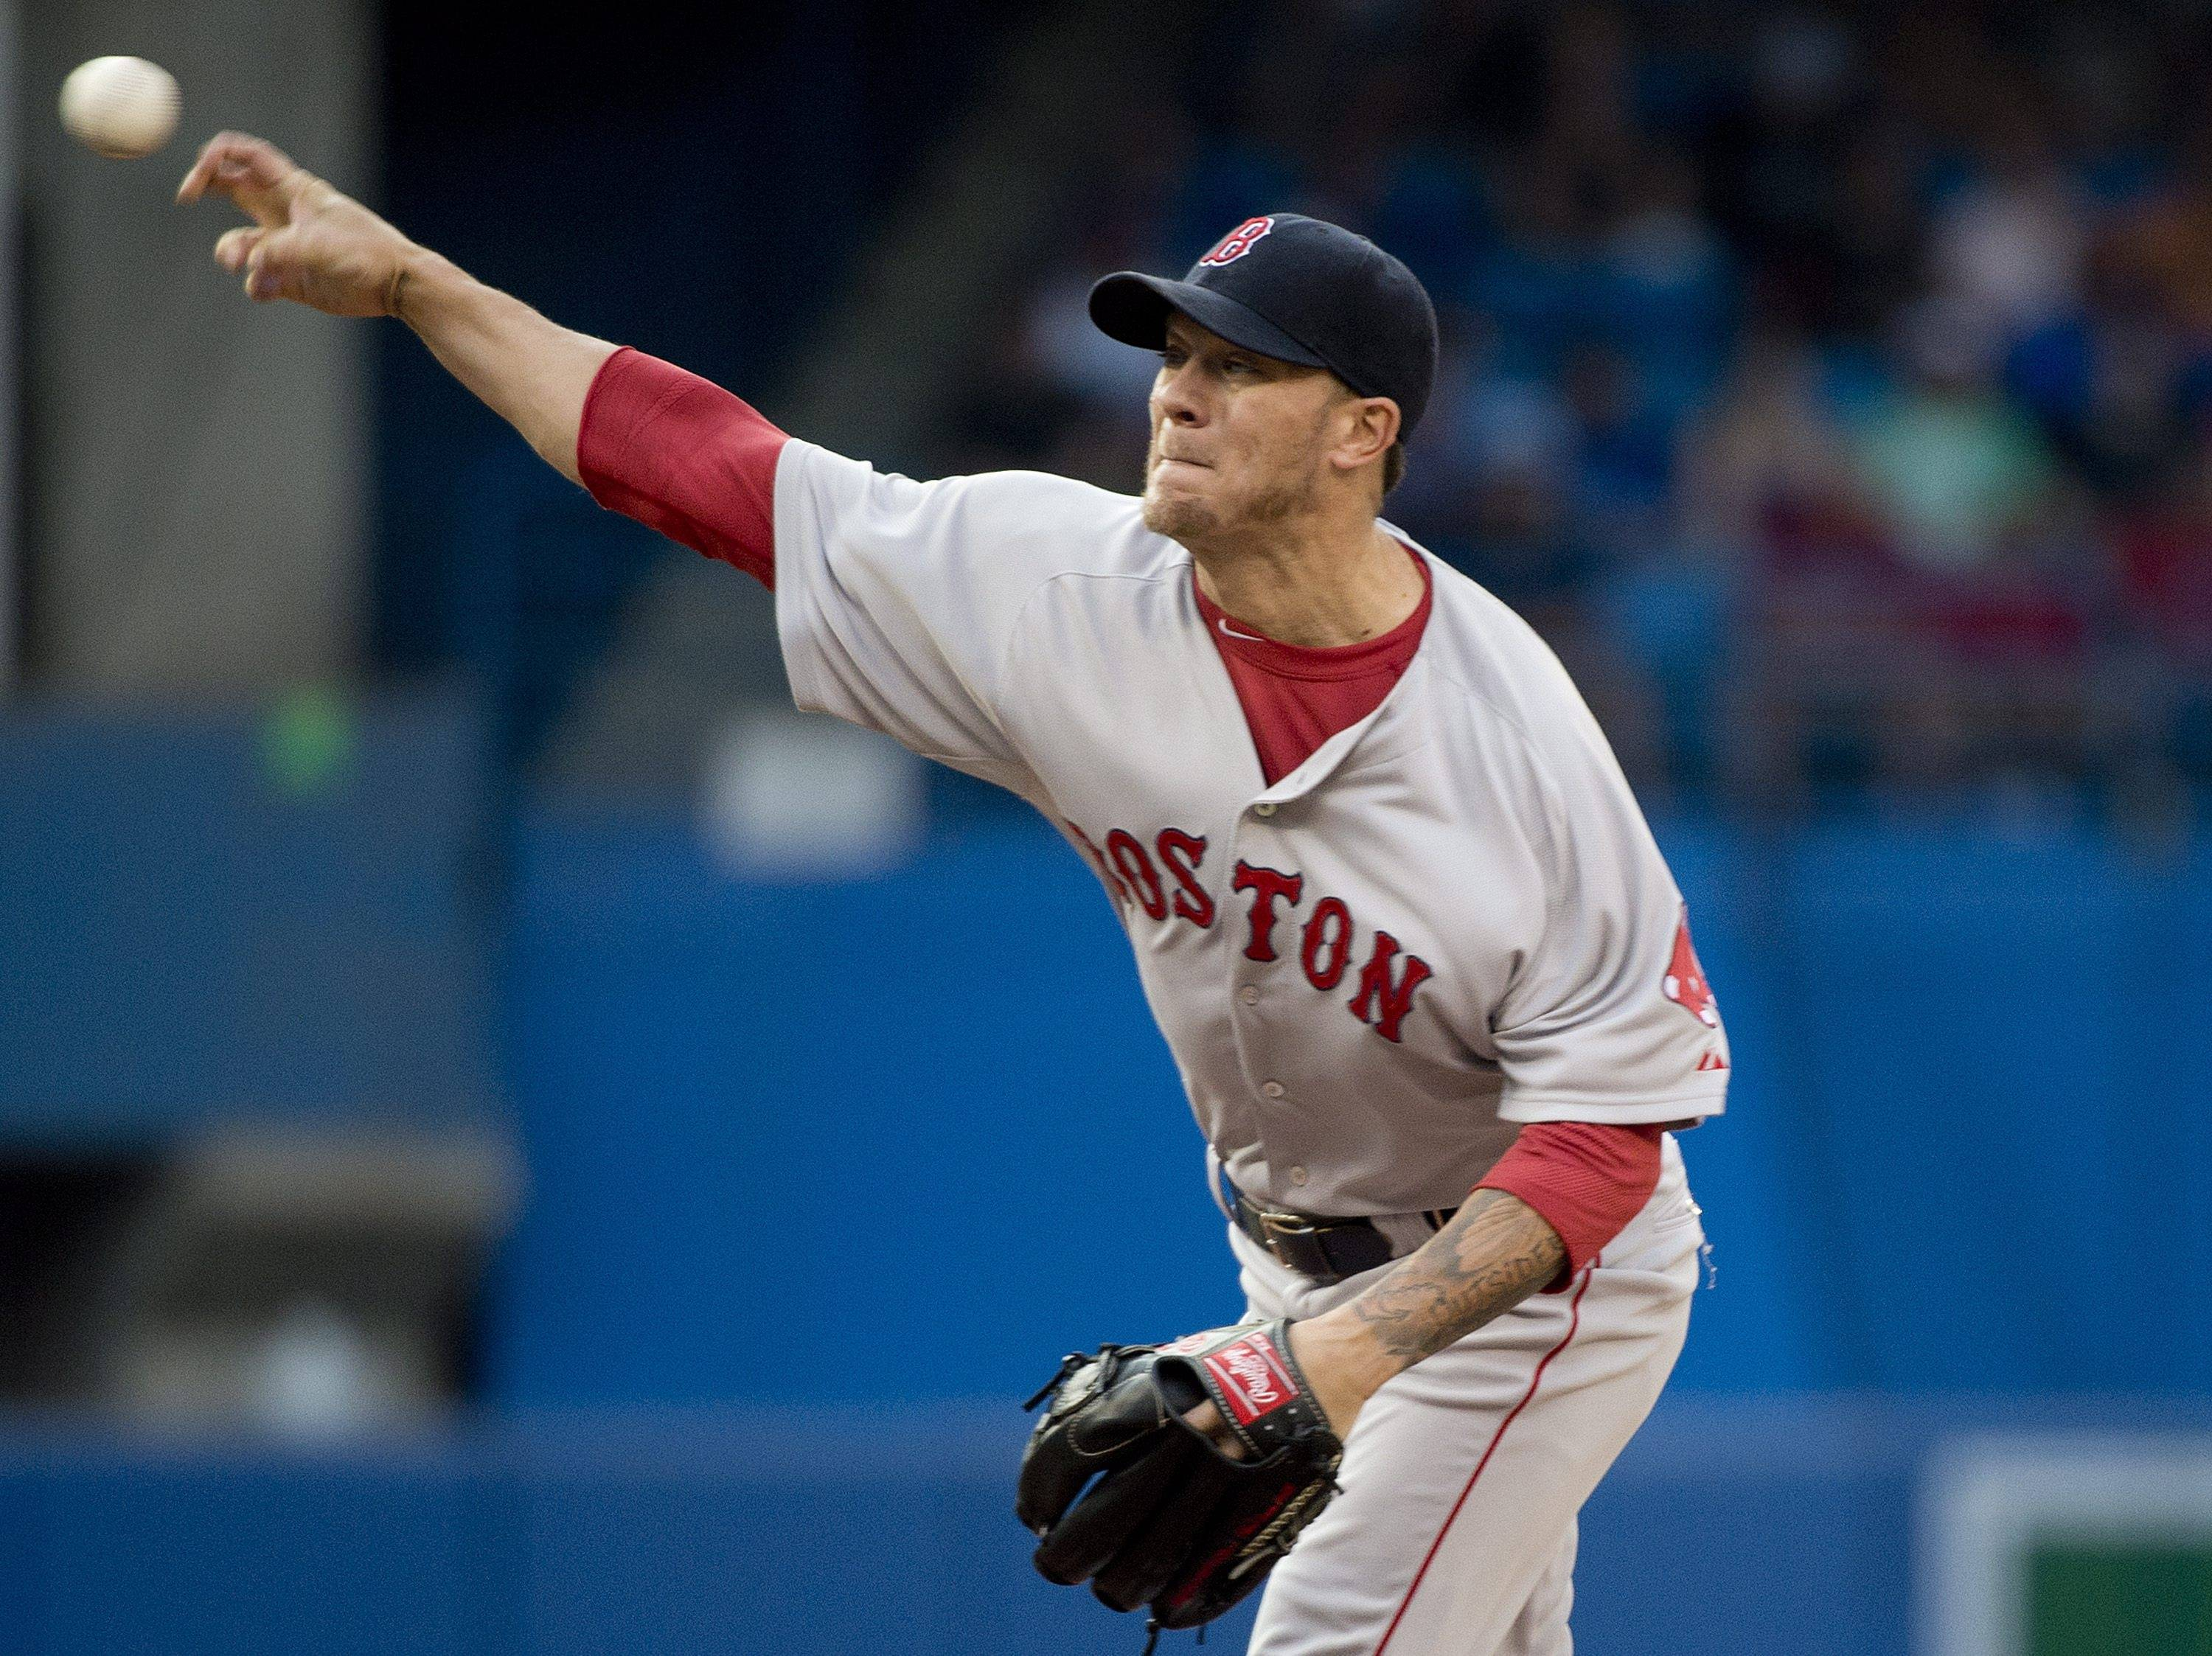 The San Francisco Giants boosted their rotation for the stretch run by acquiring right-hander and former White Sox Jake Peavy from the Boston Red Sox on Saturday for a pair of minor league pitchers.